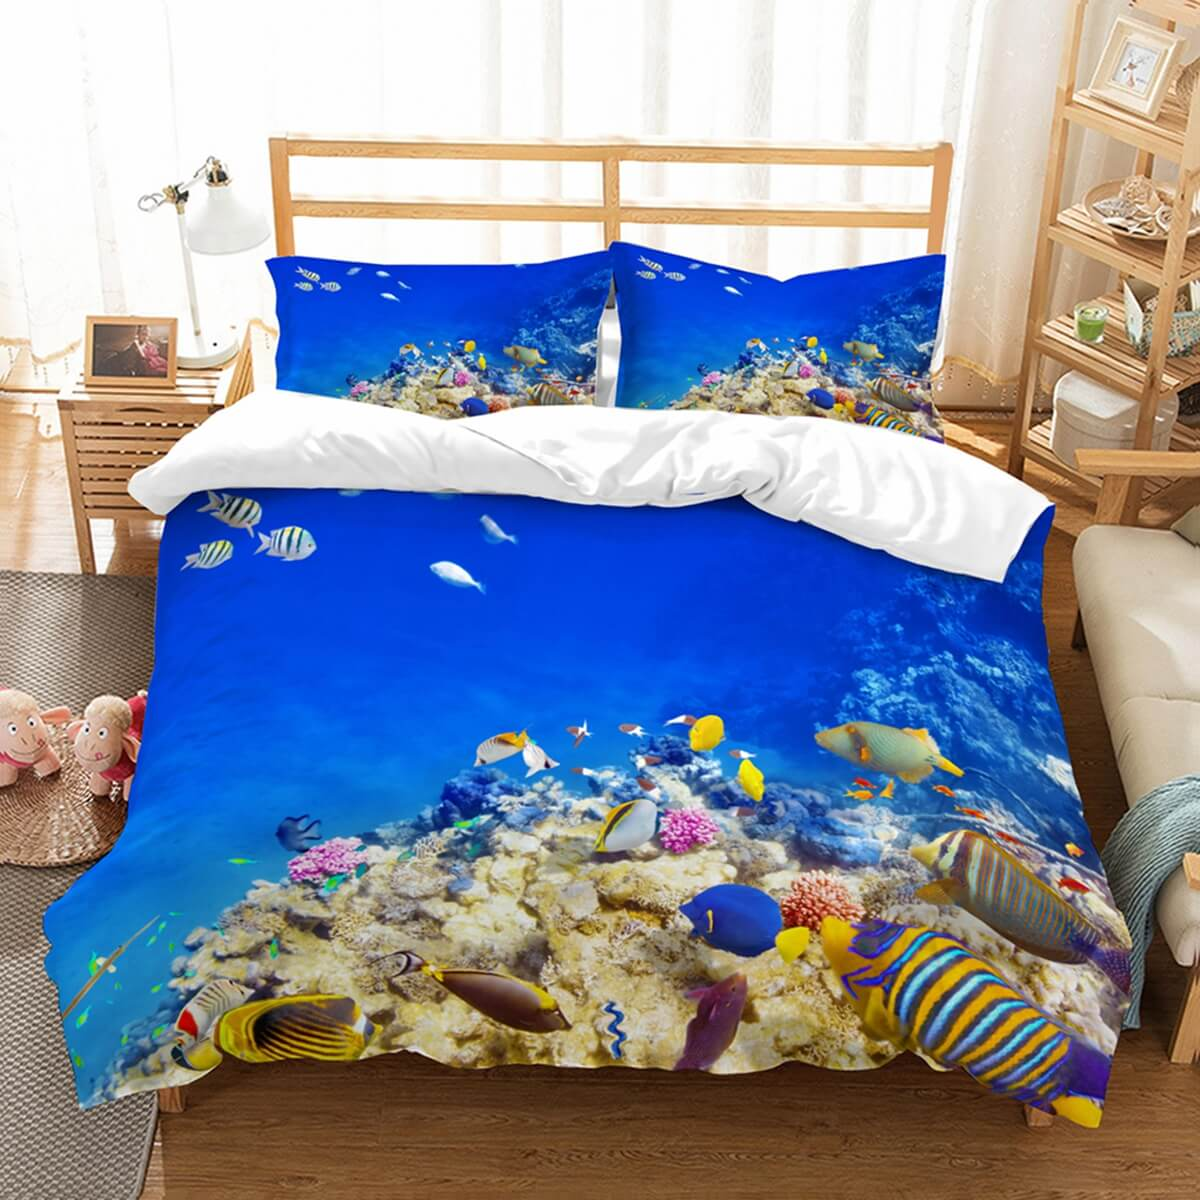 3D Customize Underwater World Bedding Set Duvet Cover Set Bedroom Set Bedlinen